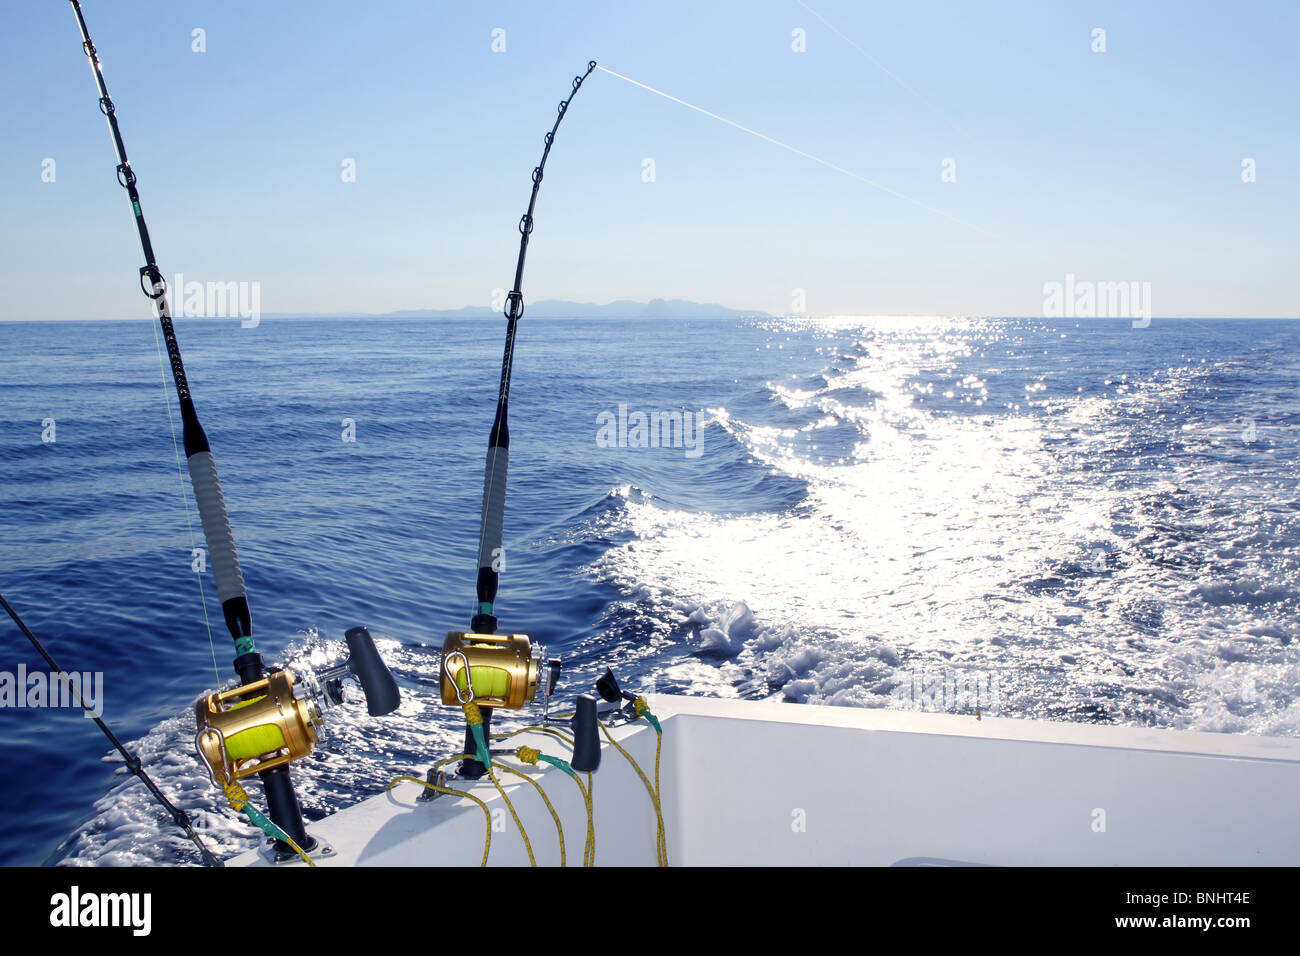 Trolling offshore fisherboat rod reels wake sea reflection horizon - Stock Image